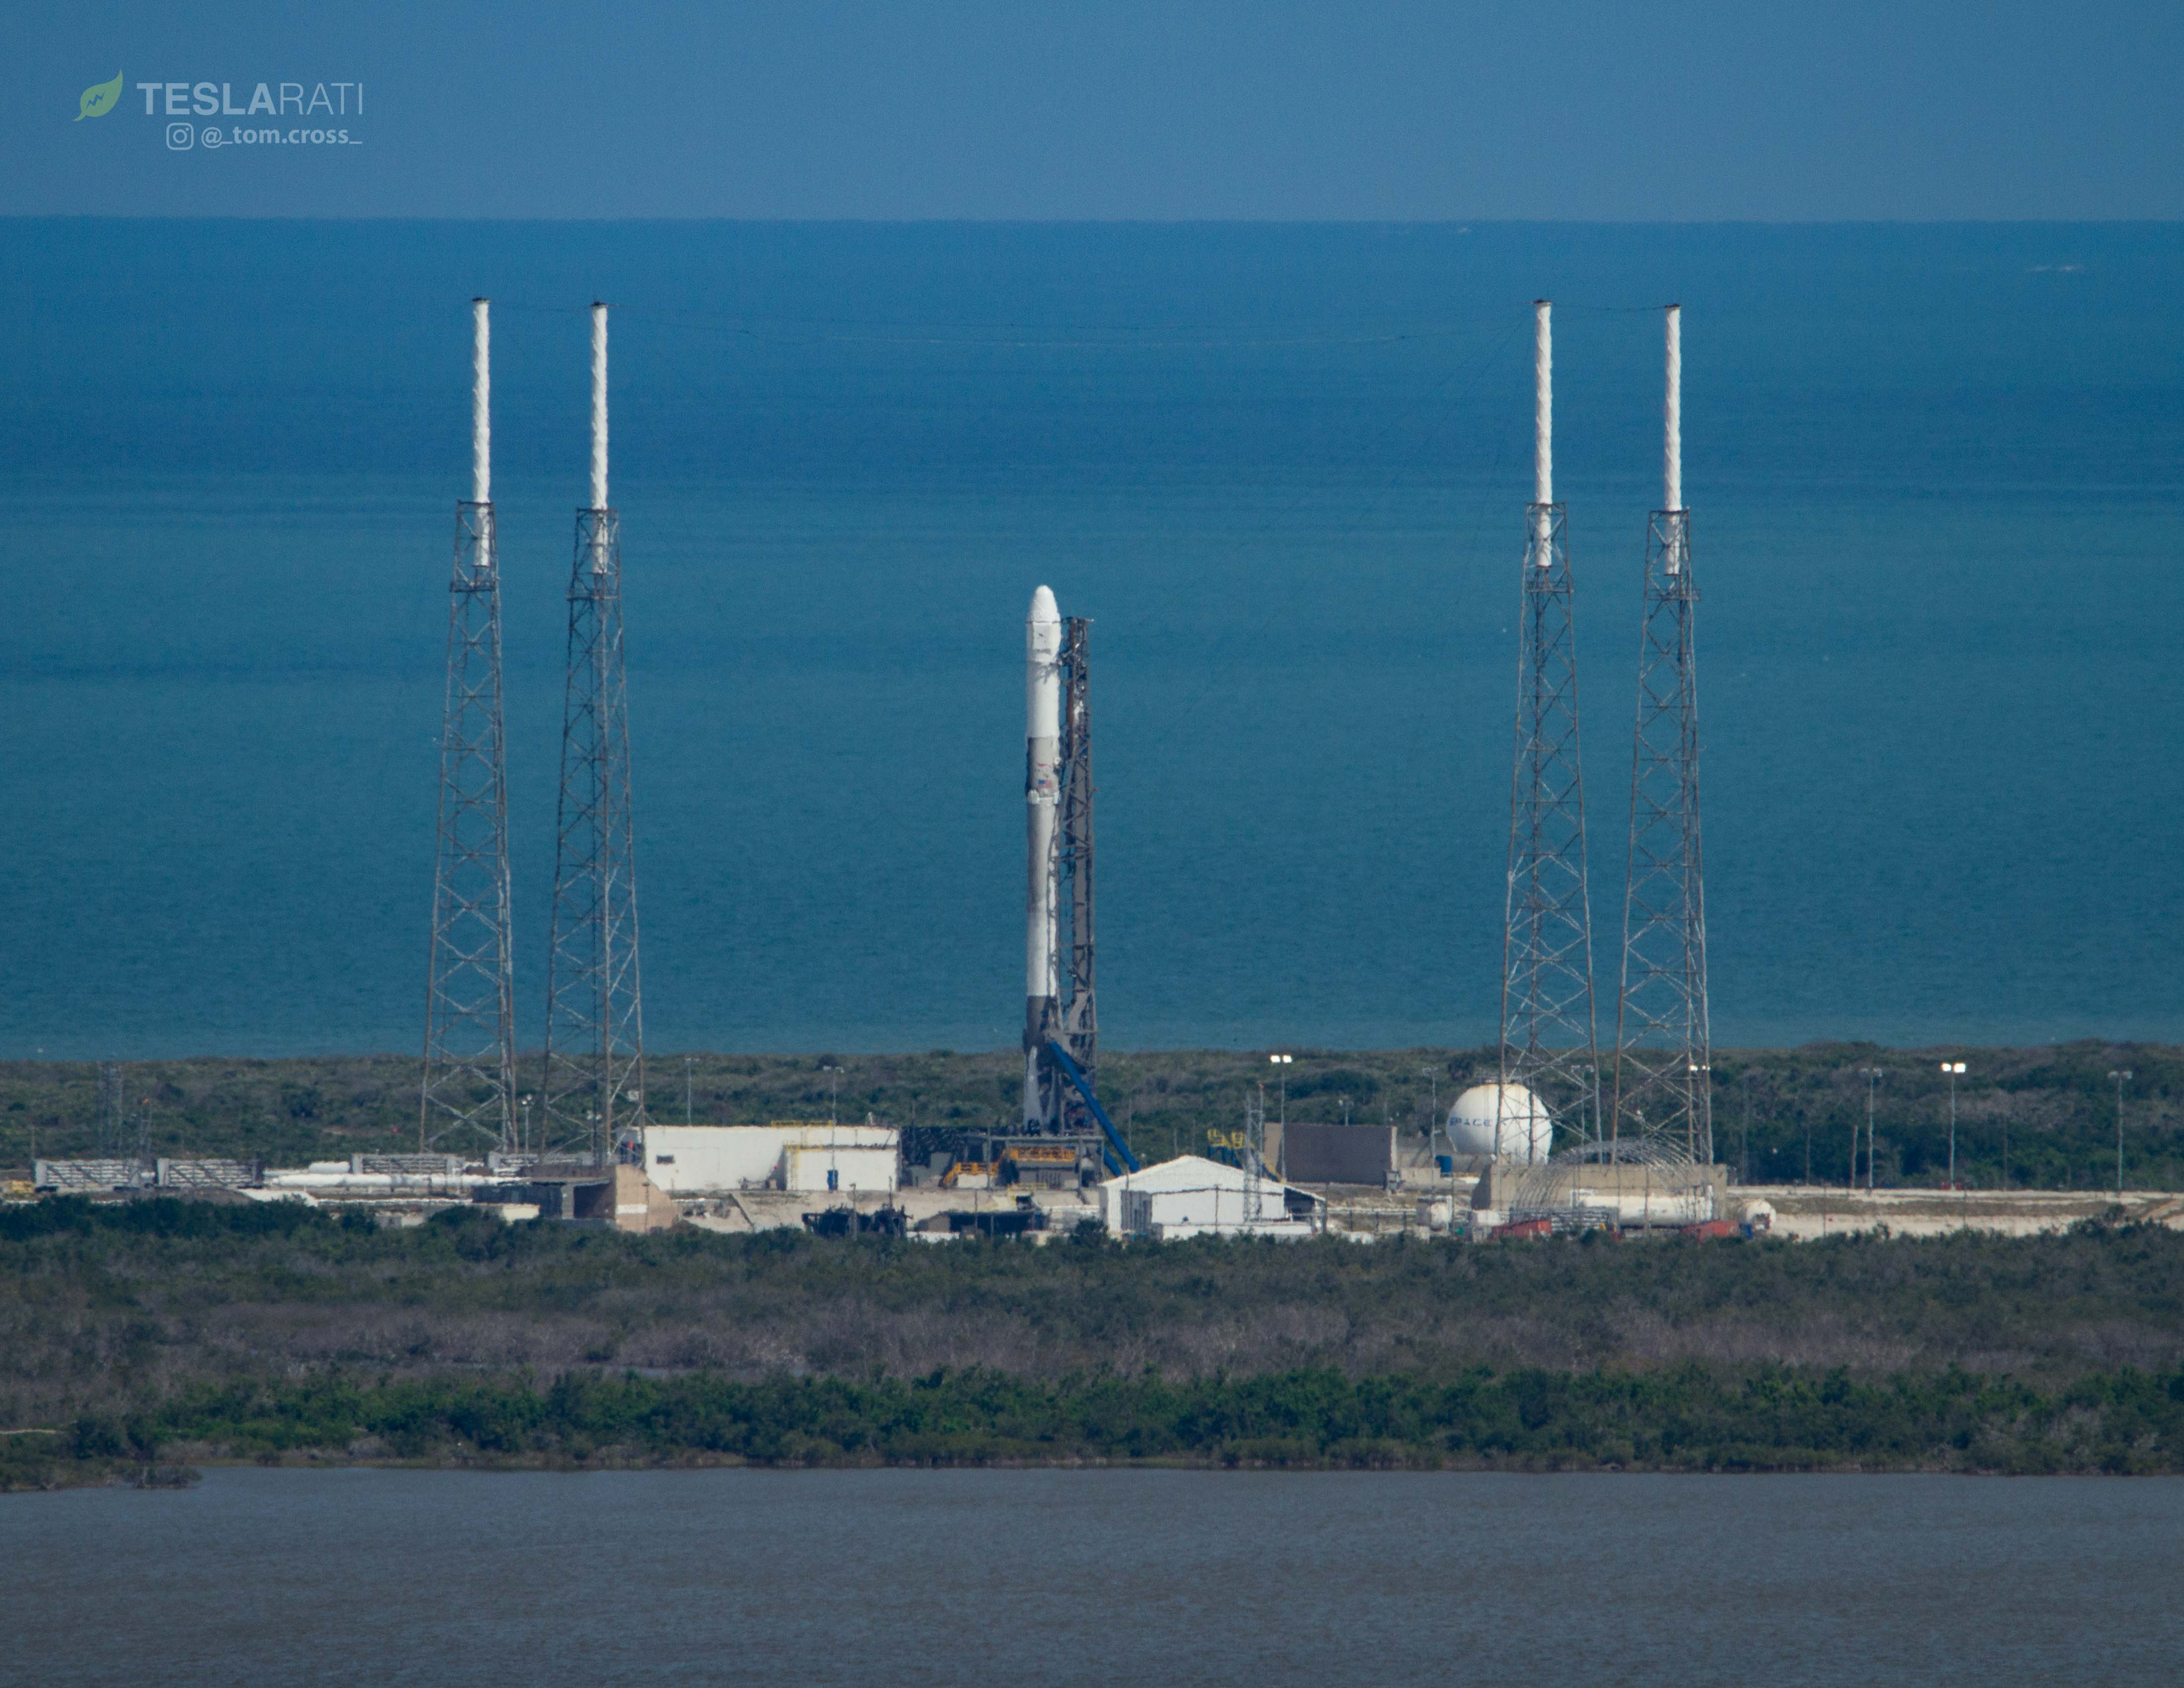 CRS-14 1039 prelaunch VAB 1 (Tom Cross)